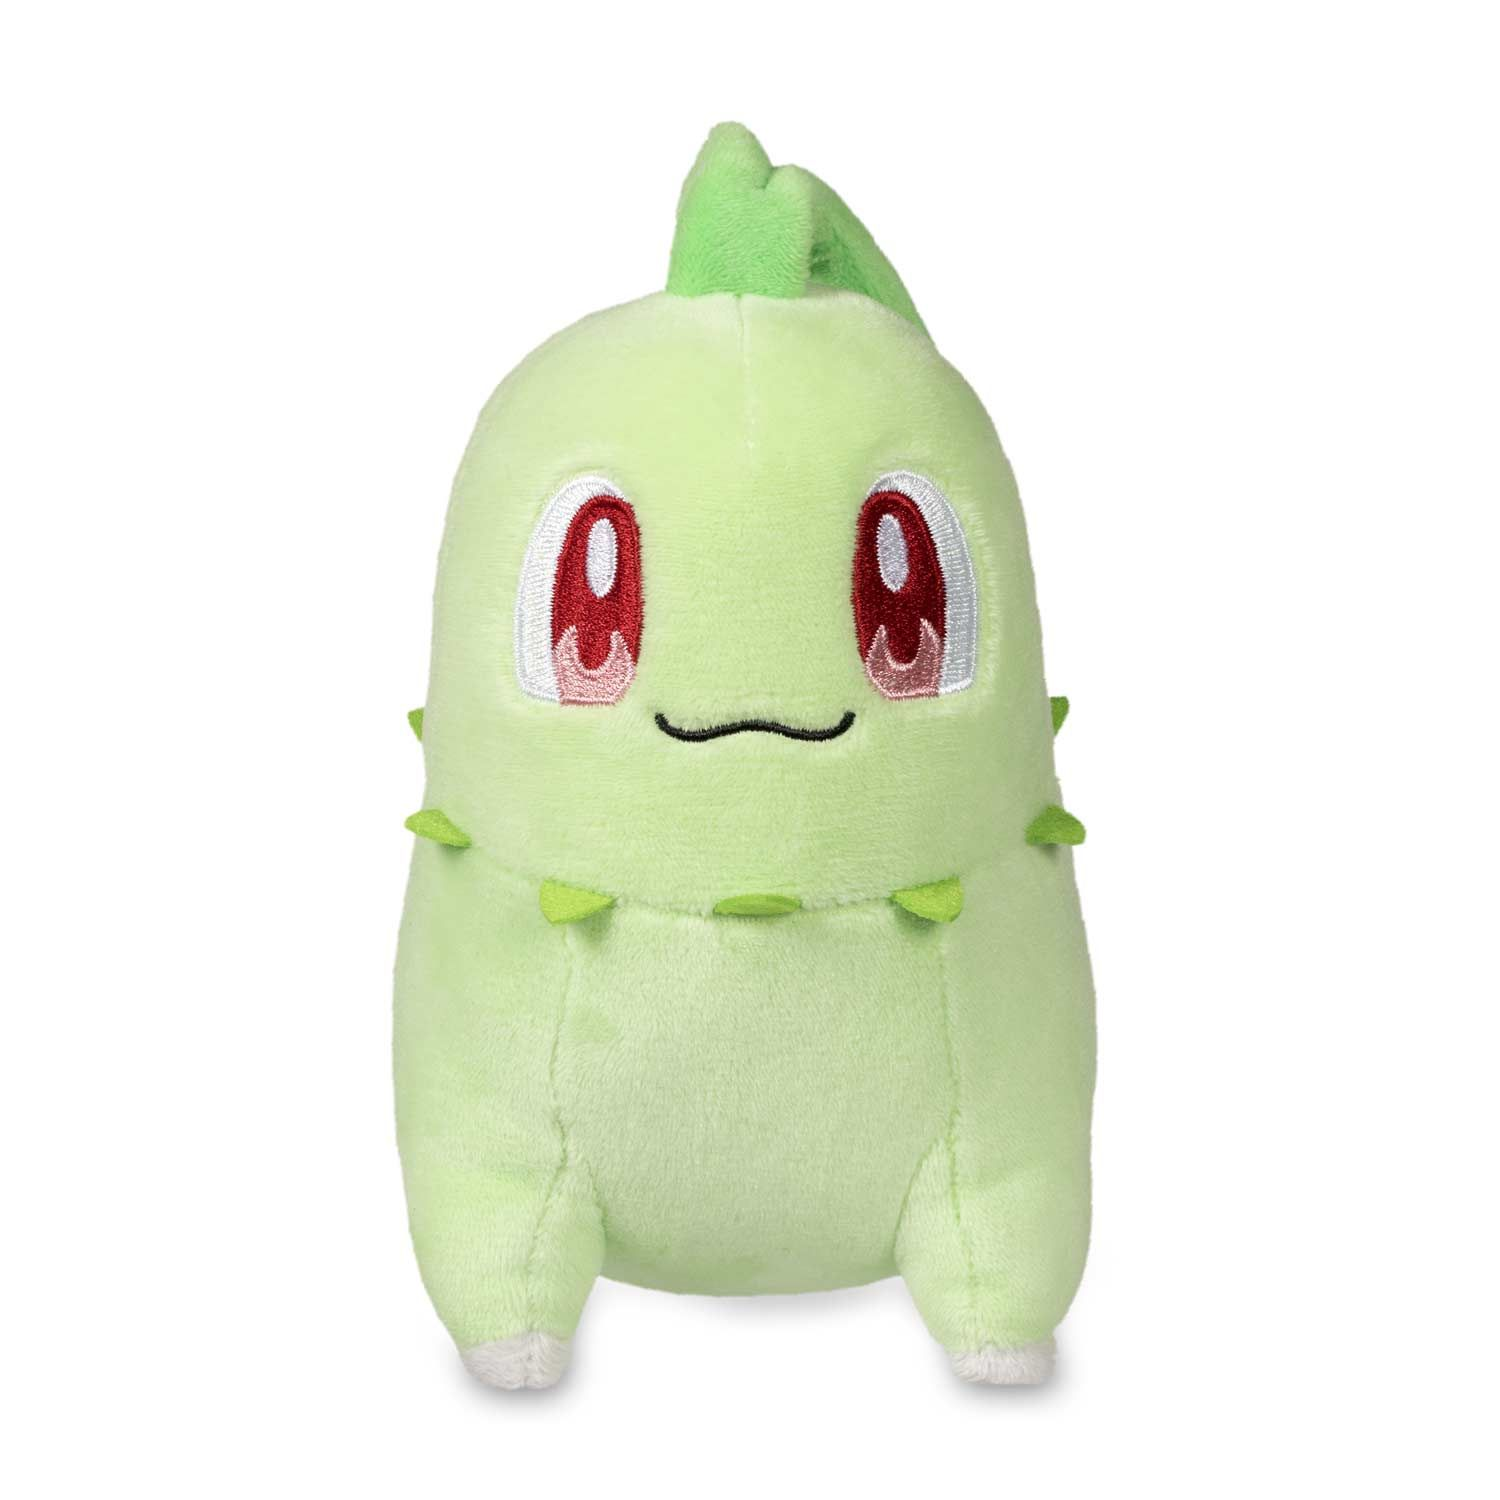 Car hanging soft toys  Official Chikorita Poké Plush   inches tall with big smile a